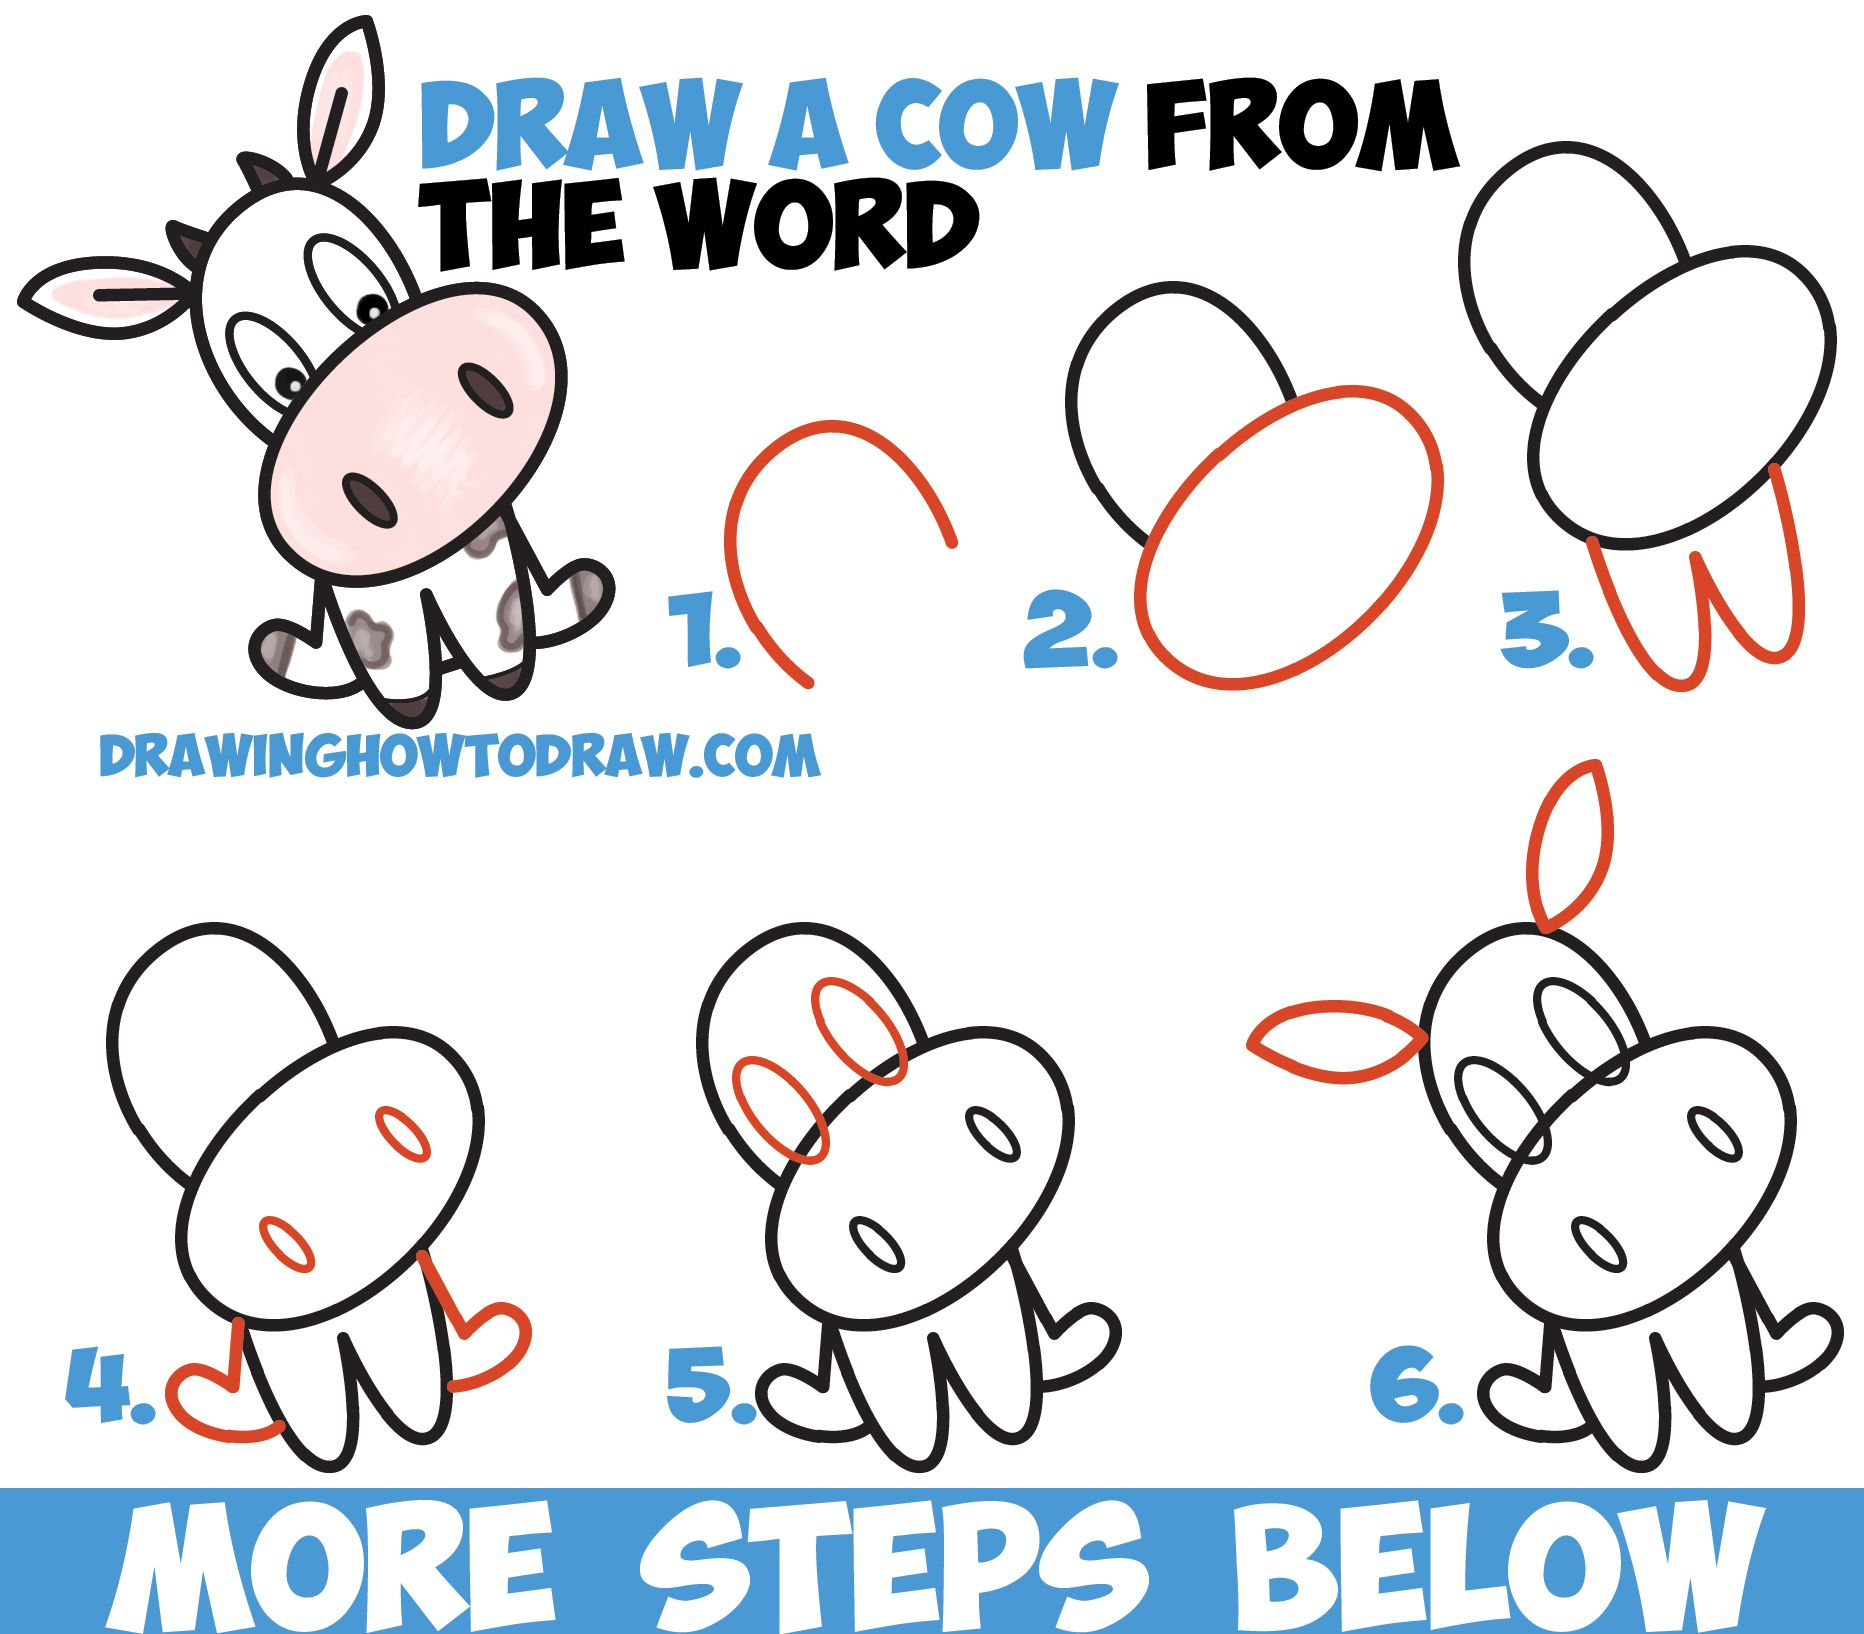 How To Draw A Cute Cartoon Kawaii Cow Word Toon Easy Step By Step Drawing Tutorial For Kids How To Draw Step By Step Drawing Tutorials Word Drawings Drawing Tutorials